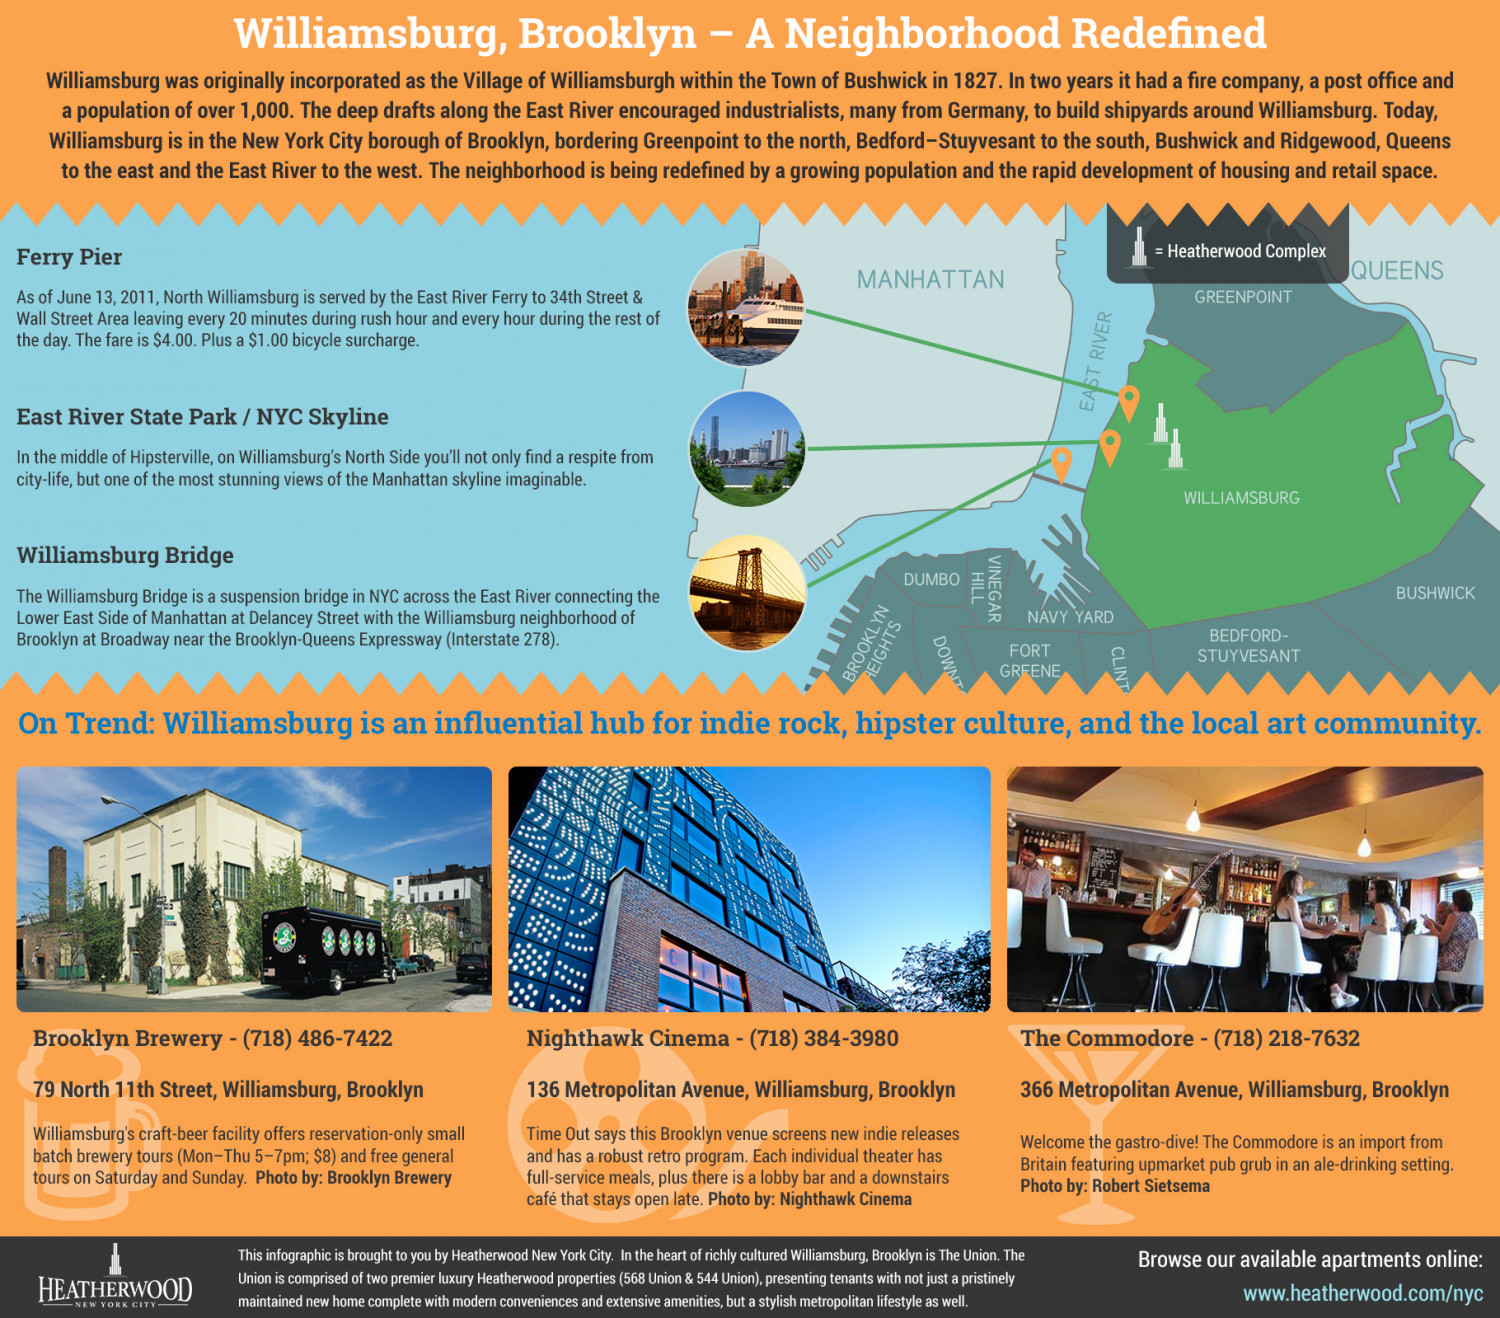 Williamsburg, Brooklyn: A Neighborhood Redefined Infographic